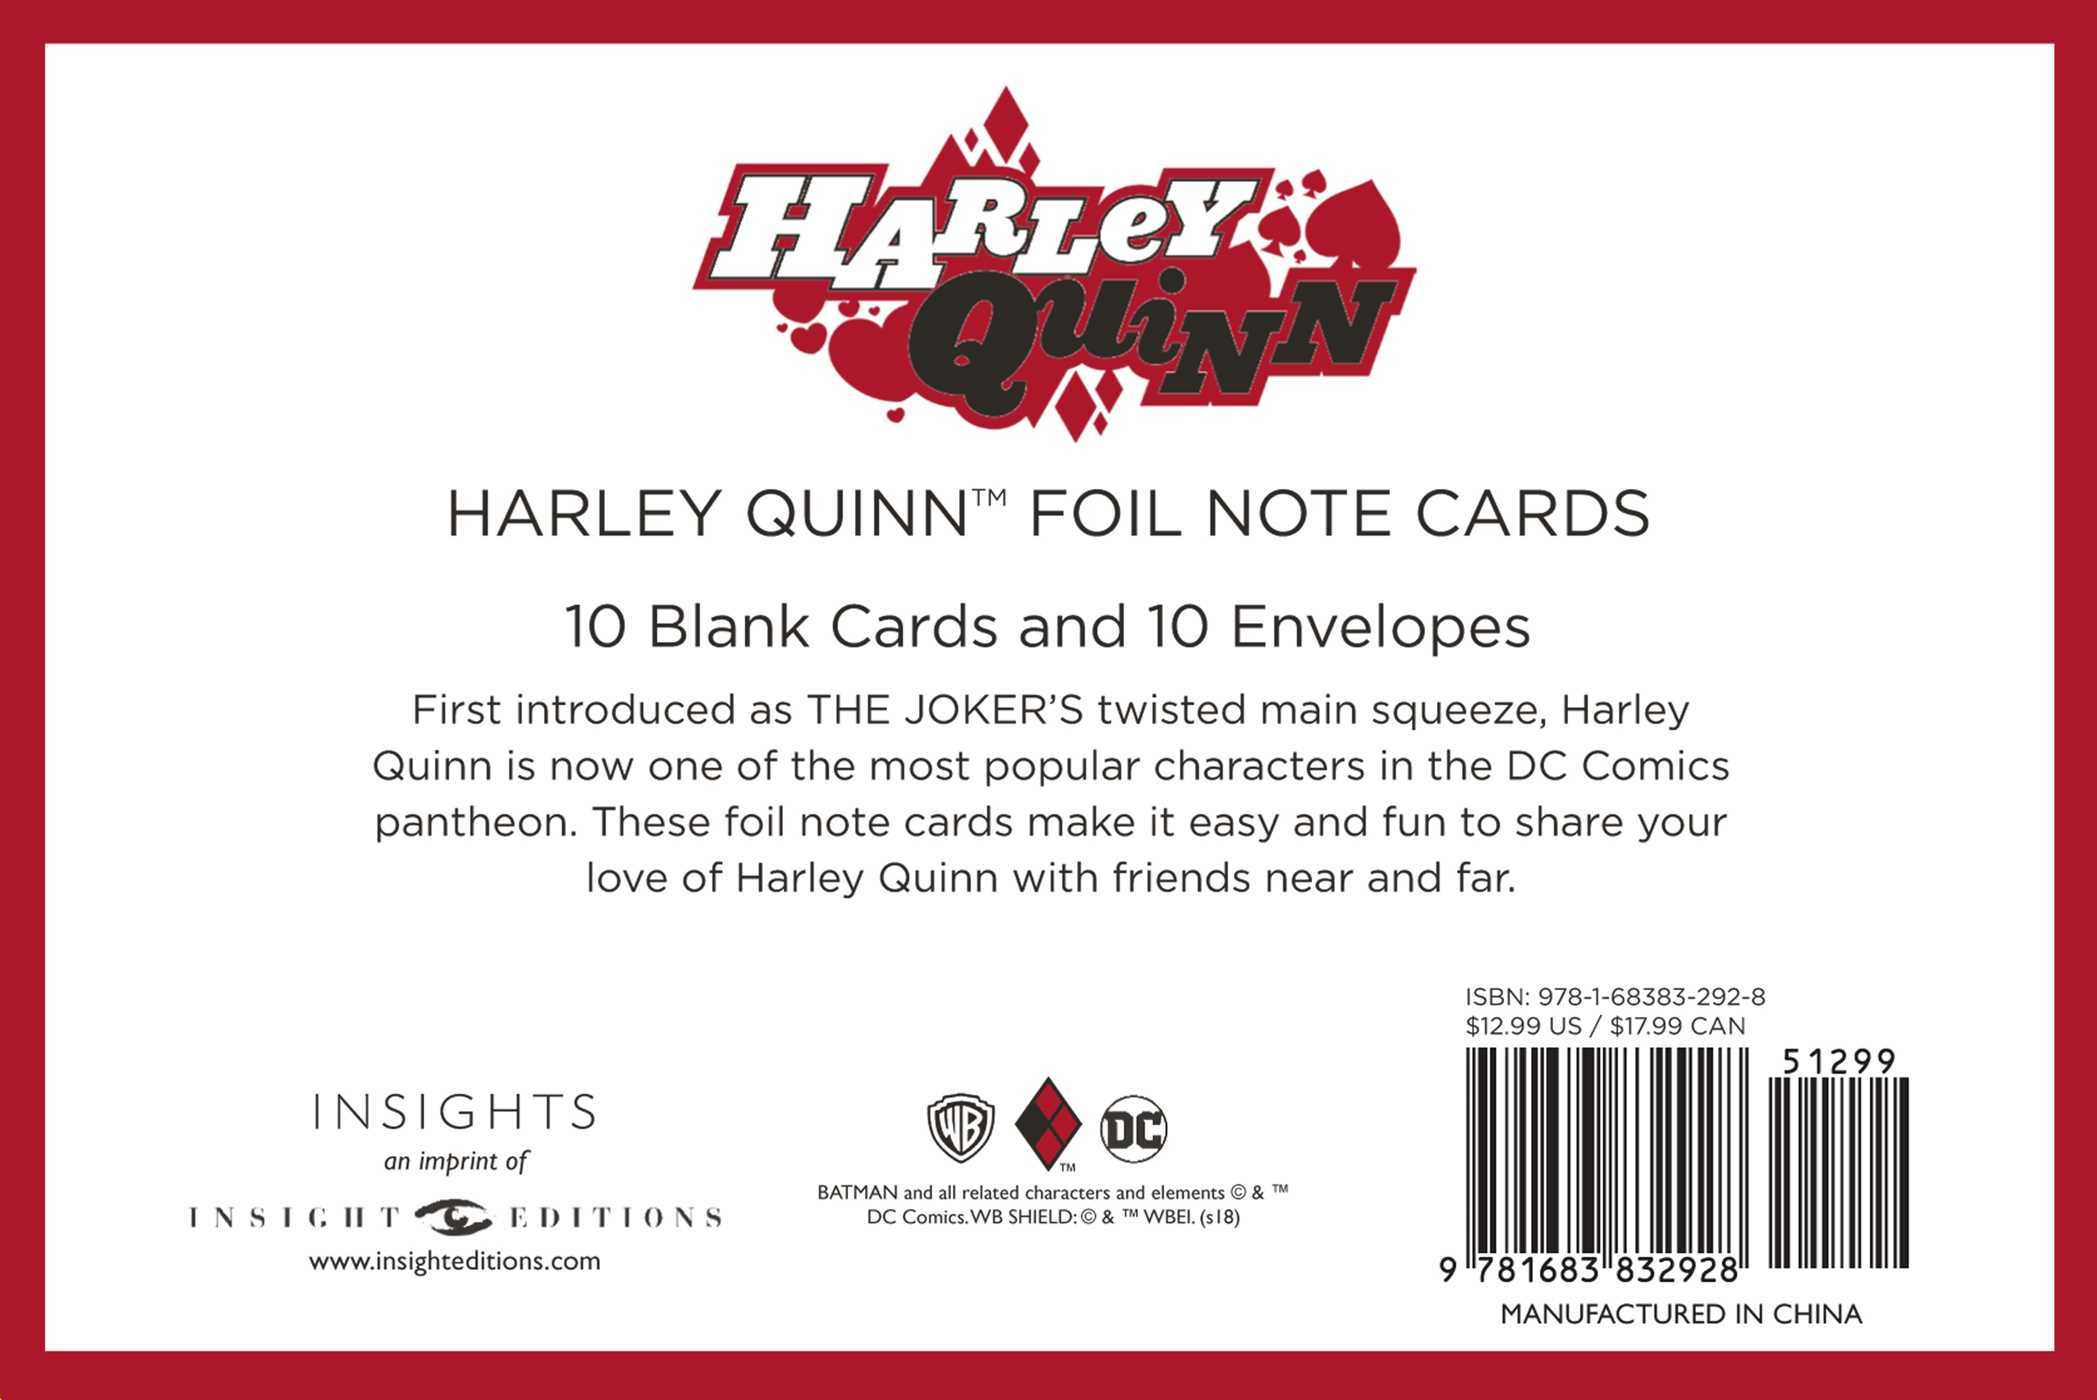 Flagrant Dc Harley Quinn Foil Note Cards Book By Easy Note Cards Endocrine System Easy Note Cards Joints Dc Comics Harley Quinn Foil Note Cards Set cards Easy Note Cards